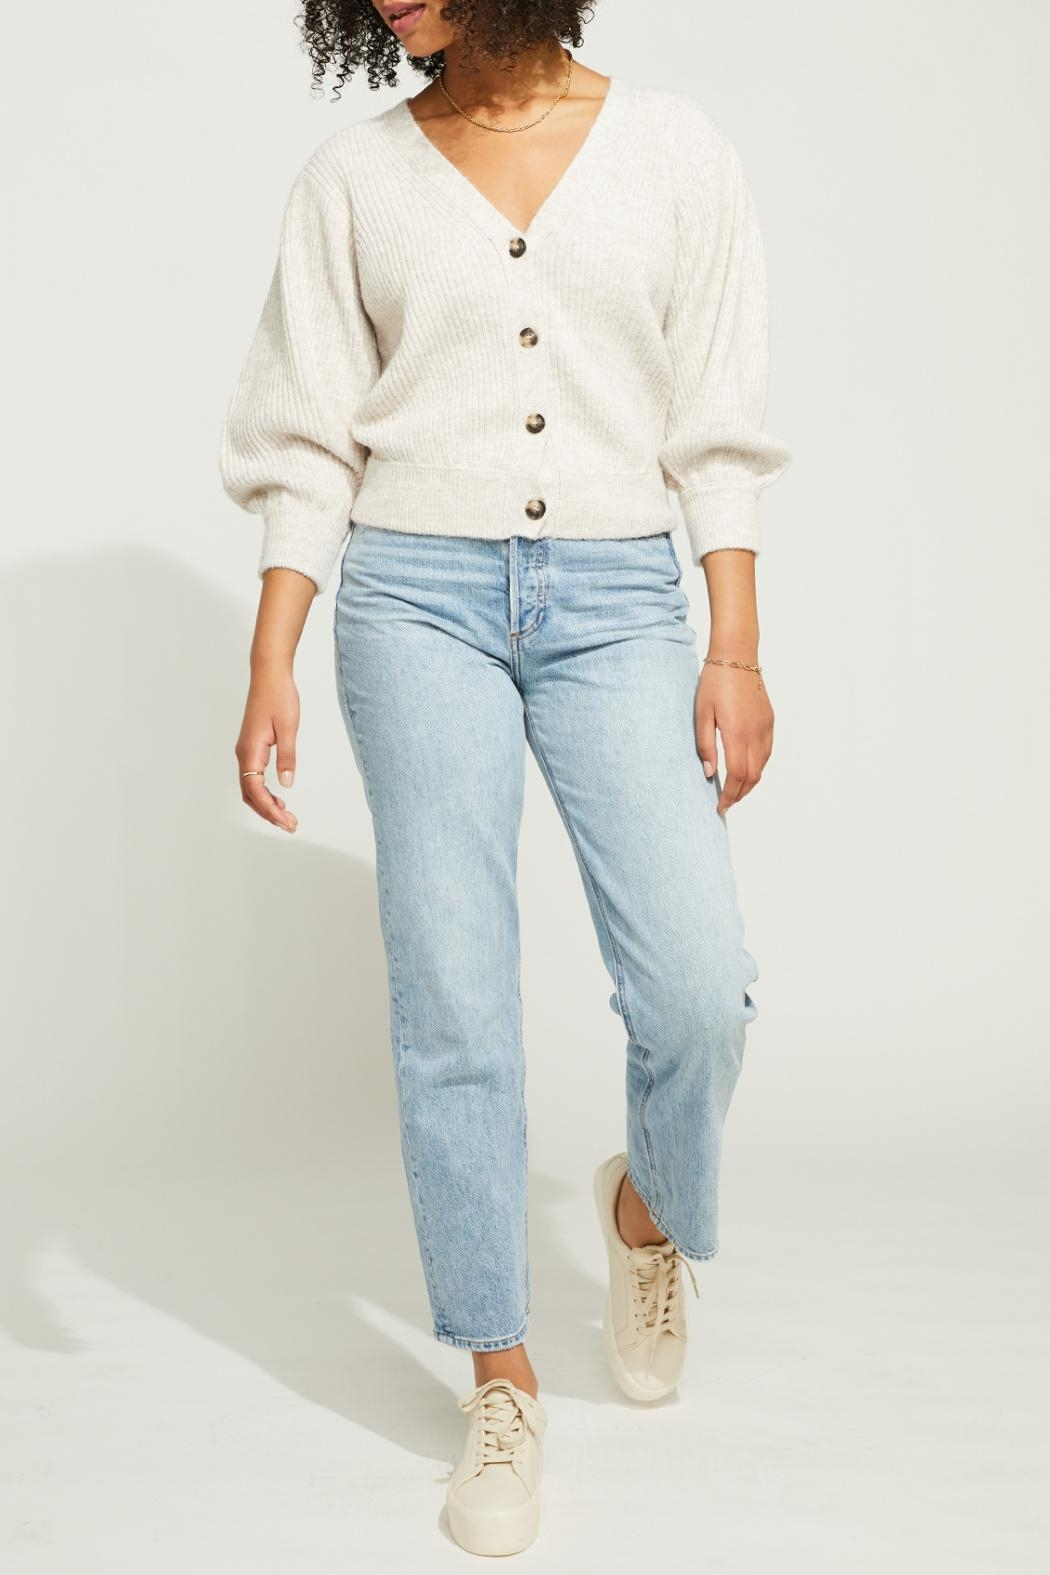 Gentle Fawn Cropped Button Front Cardigan - Side Cropped Image